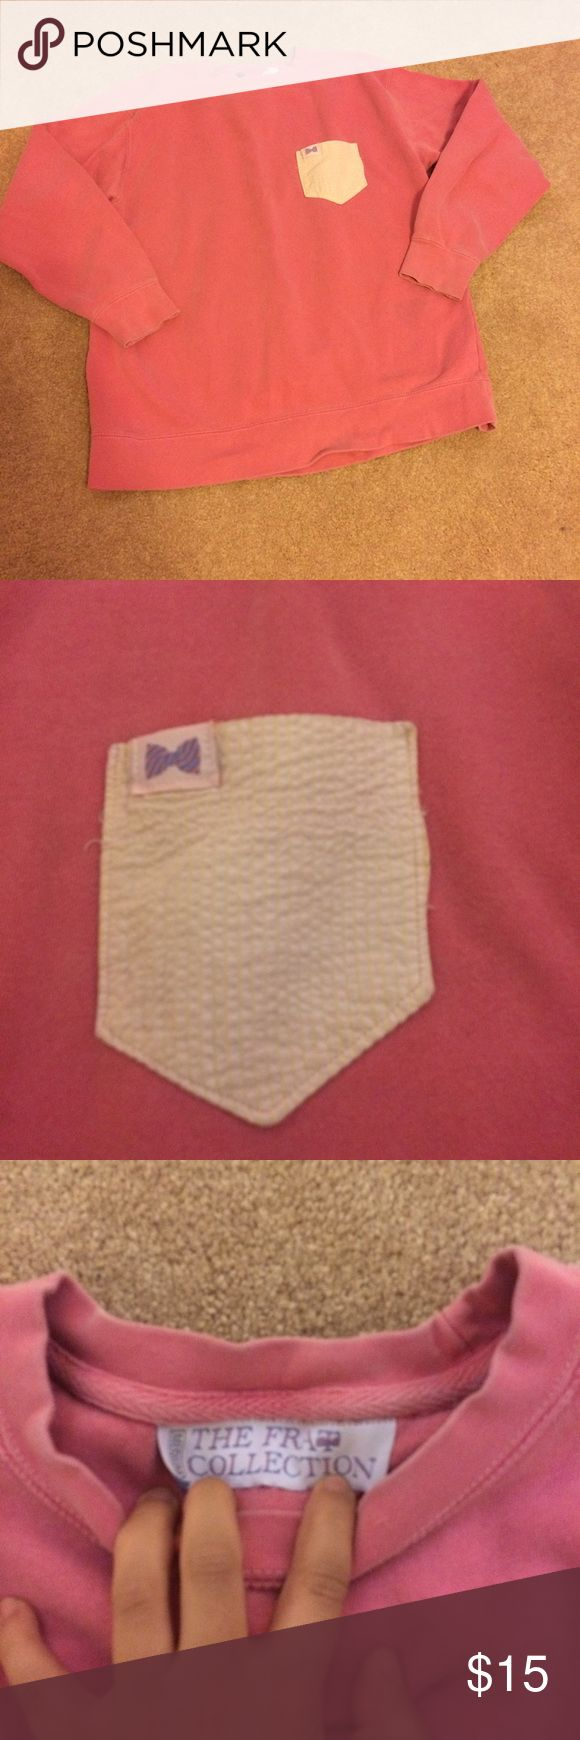 Frat Collection Sweatshirt! Pinky/salmon colored with yellow seersucker pocket. Is by no means brand new. Has been well loved an has some marks. Can take picks of them but are hardly noticeable. Was $80 originally. Vineyard Vines Tops Sweatshirts & Hoodies